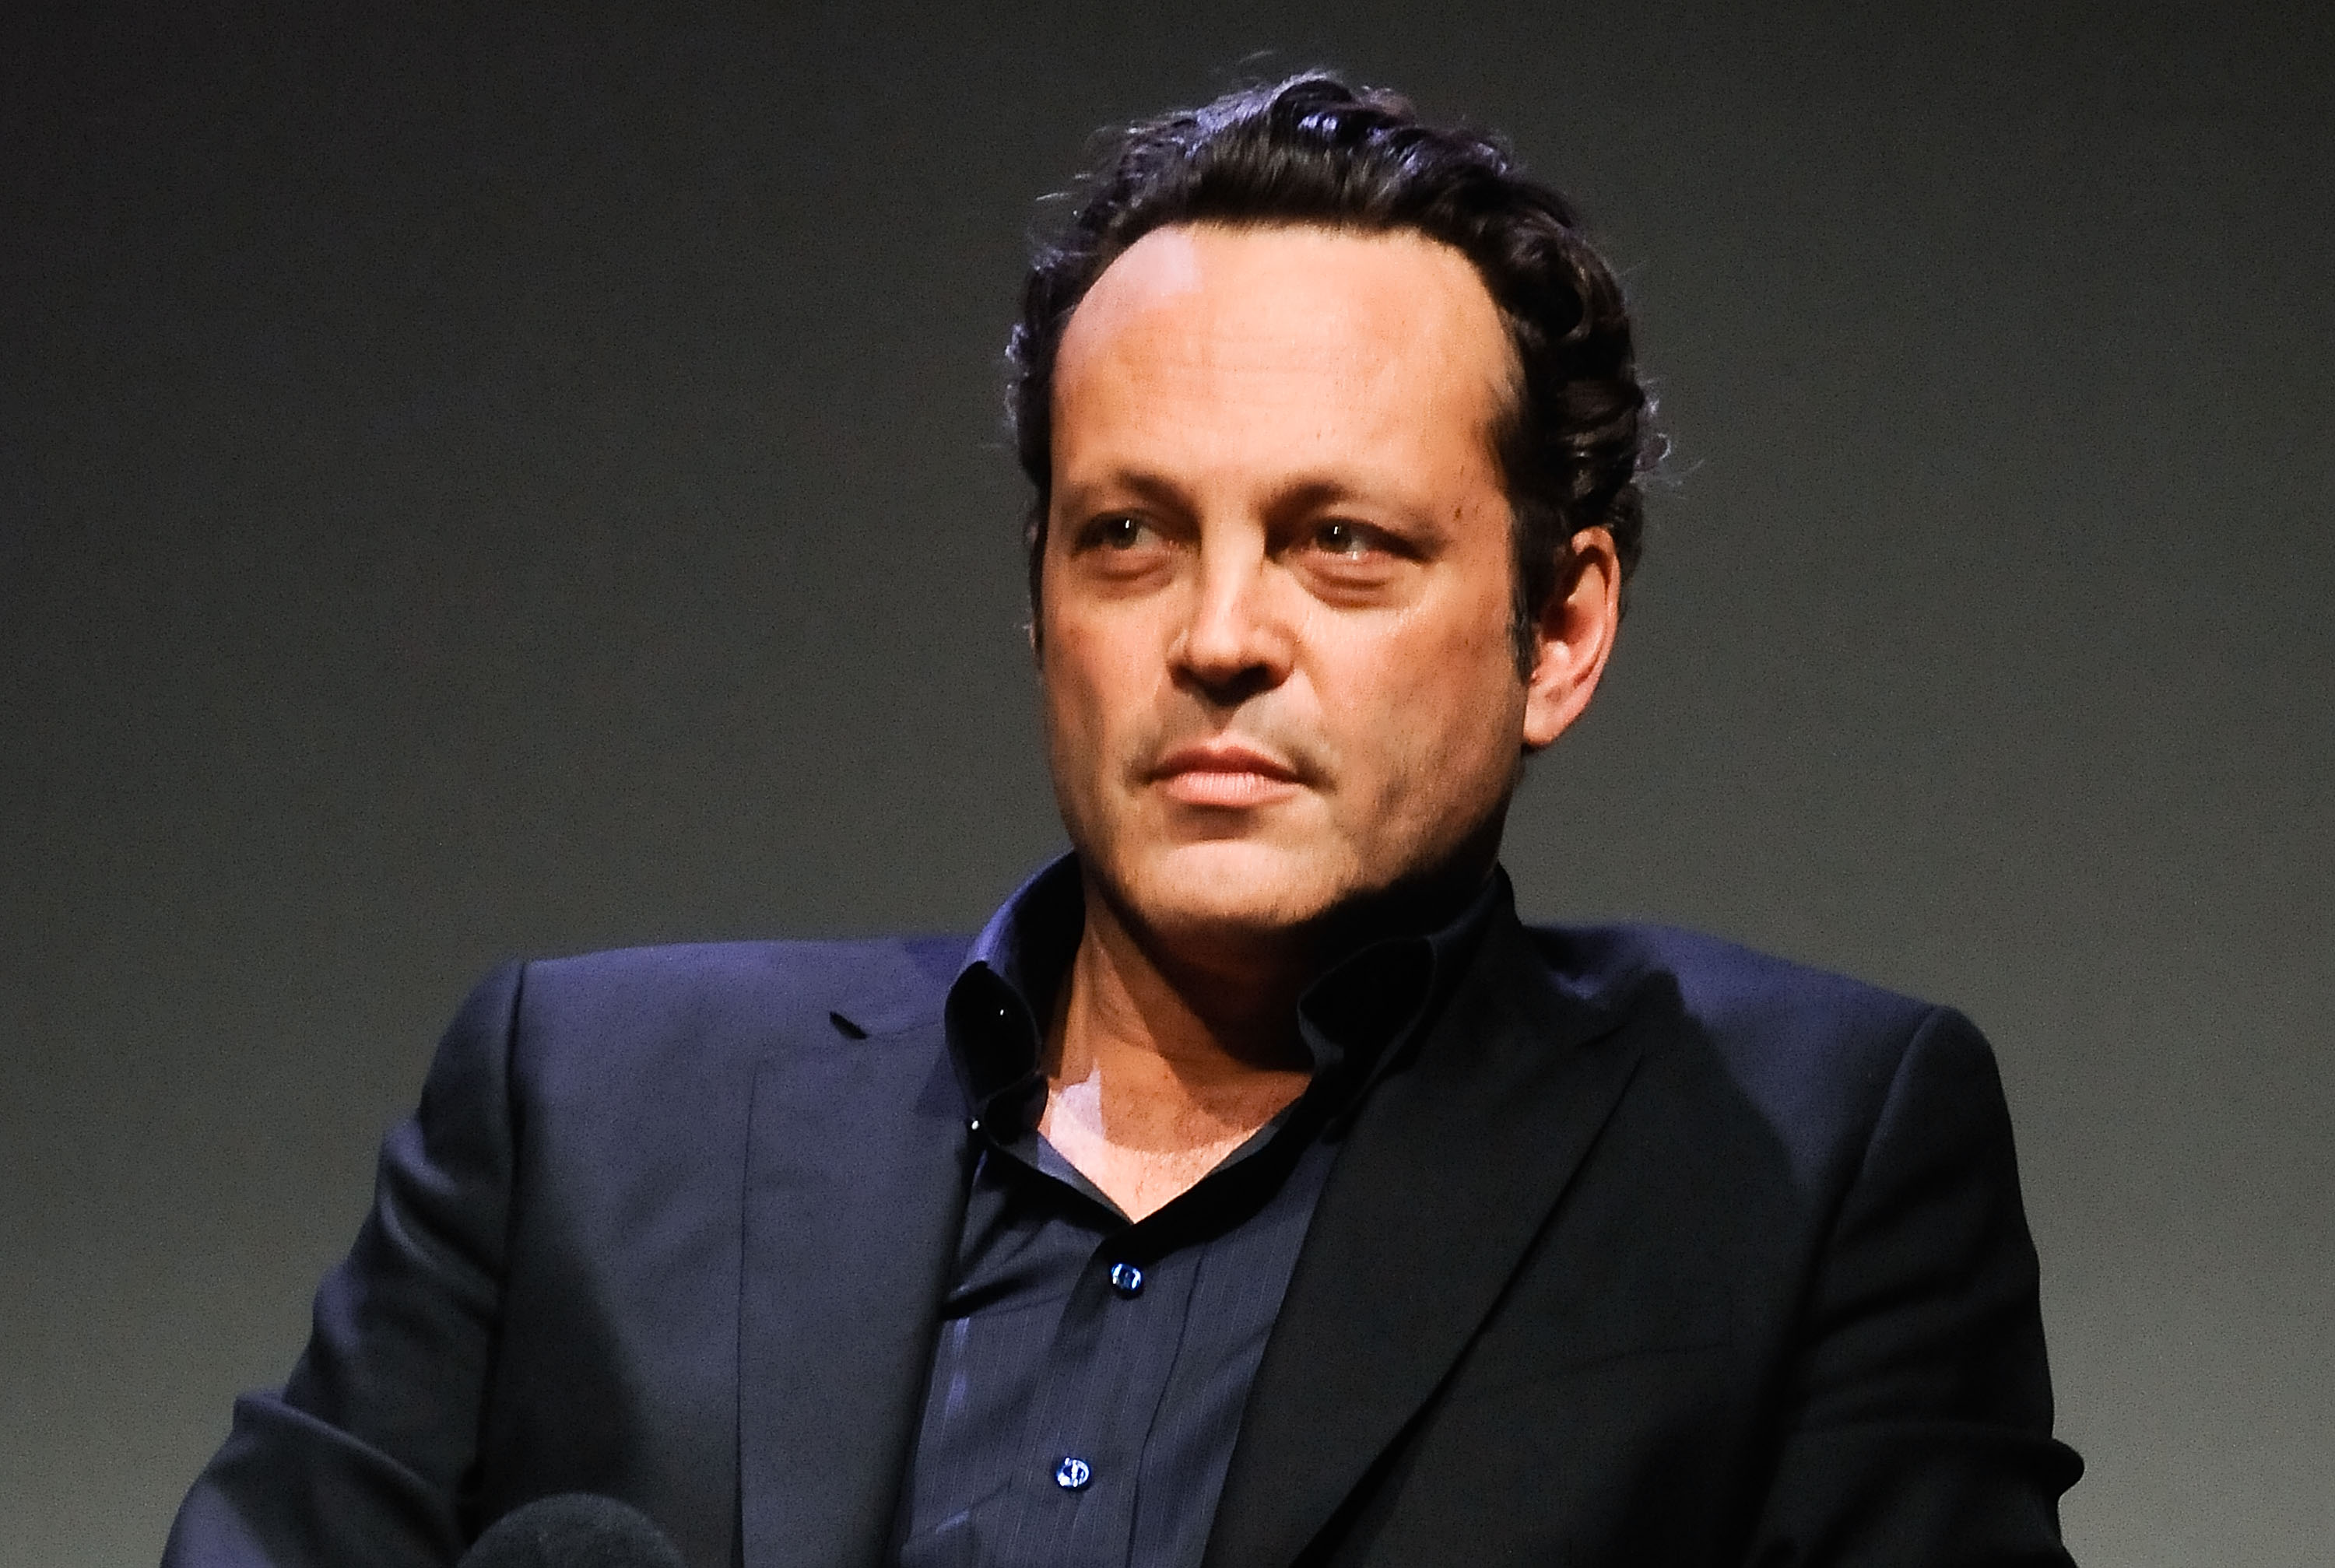 Apple Store Soho Presents Meet The Actor: Vince Vaughn